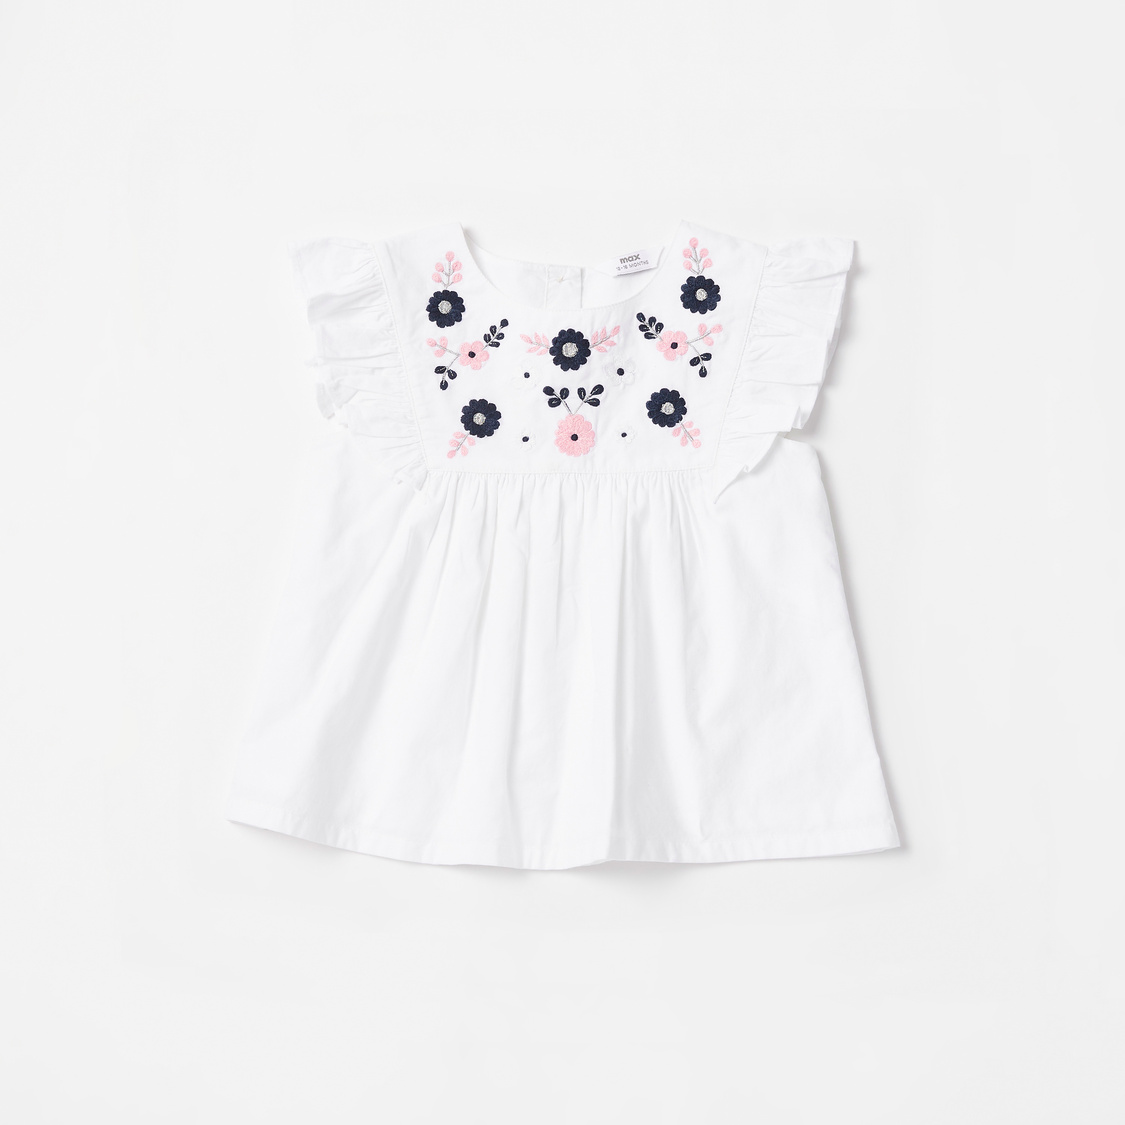 Embroidered Detail Cap Sleeves Top with Polka Dot Print Shorts Set